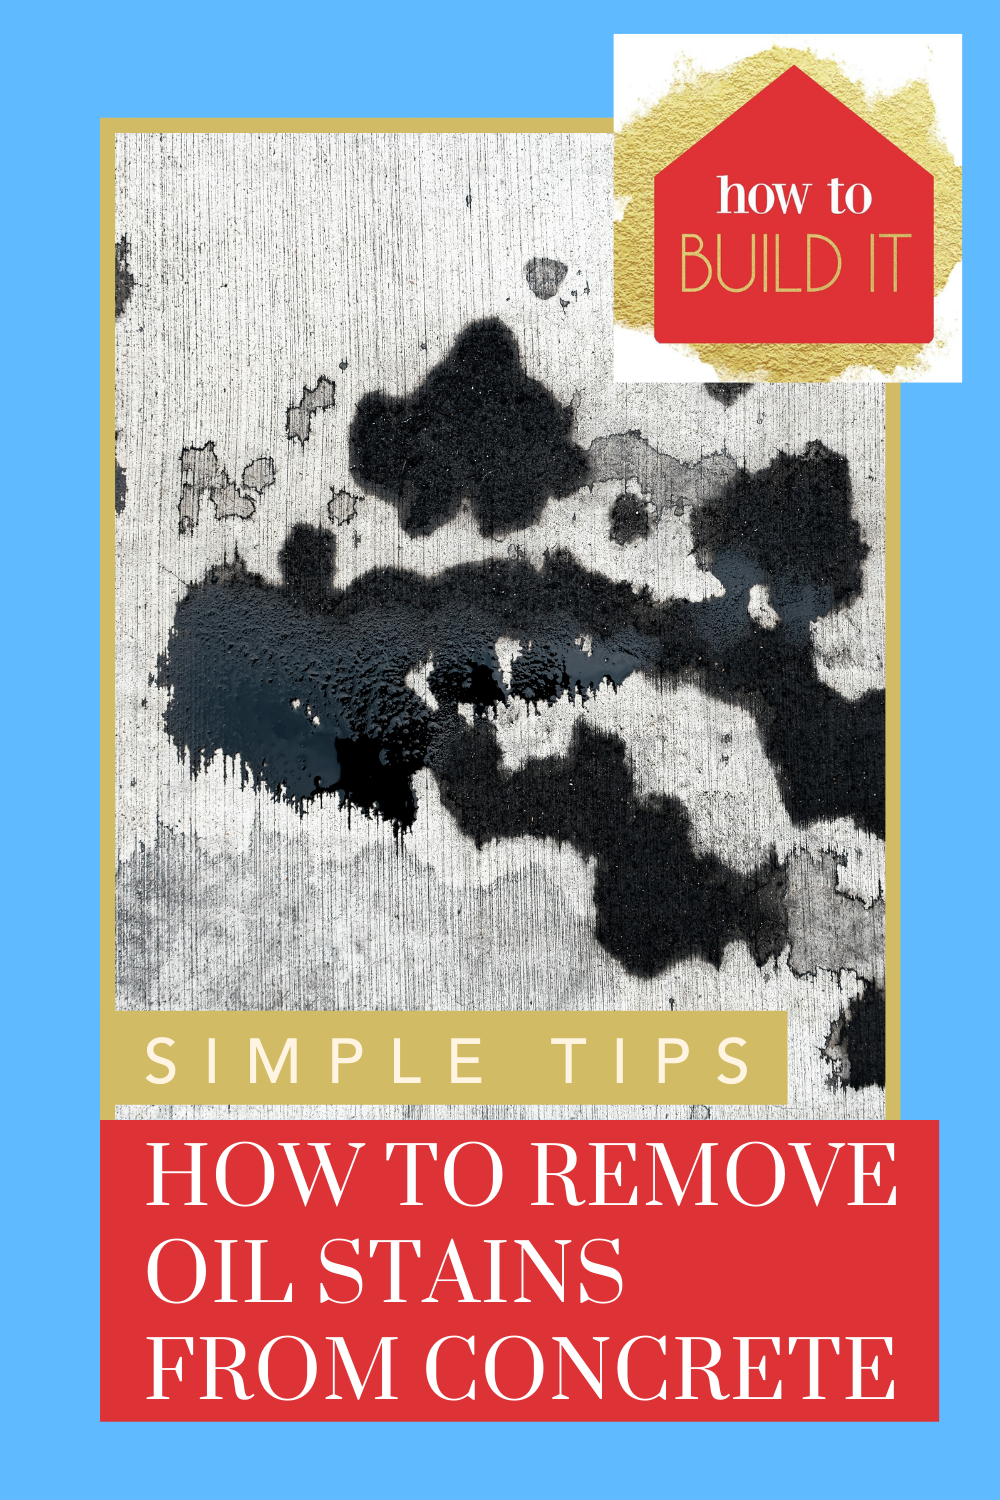 Howtobuildit.org can show you how to get those yucky oil stains out of your concrete. Oil stains happen, but they don't have to stay there. These easy to follow tips will have your concrete stain-free.